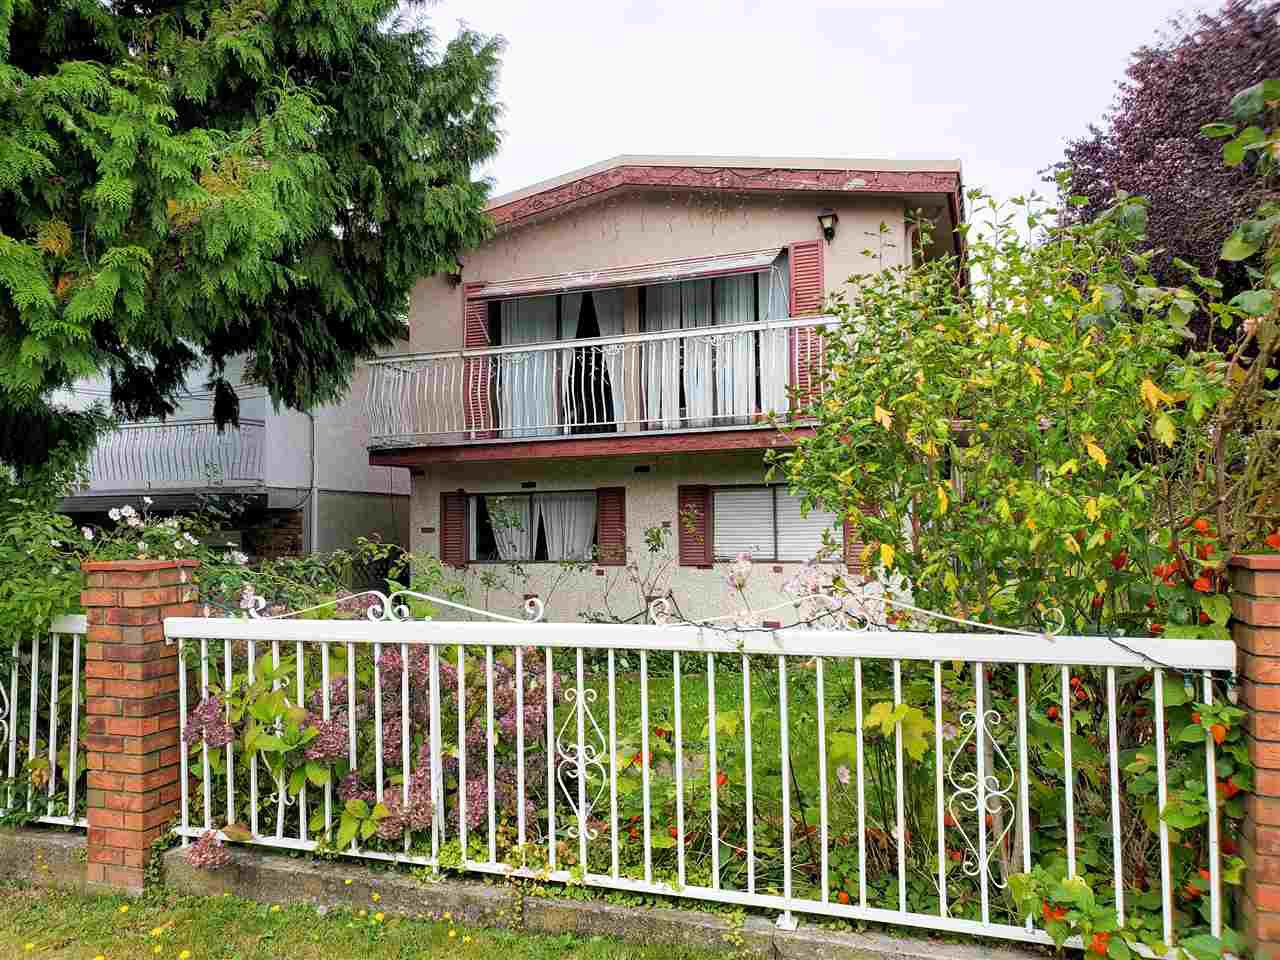 Main Photo: 4585 PRINCE ALBERT Street in Vancouver: Fraser VE House for sale (Vancouver East)  : MLS®# R2503213